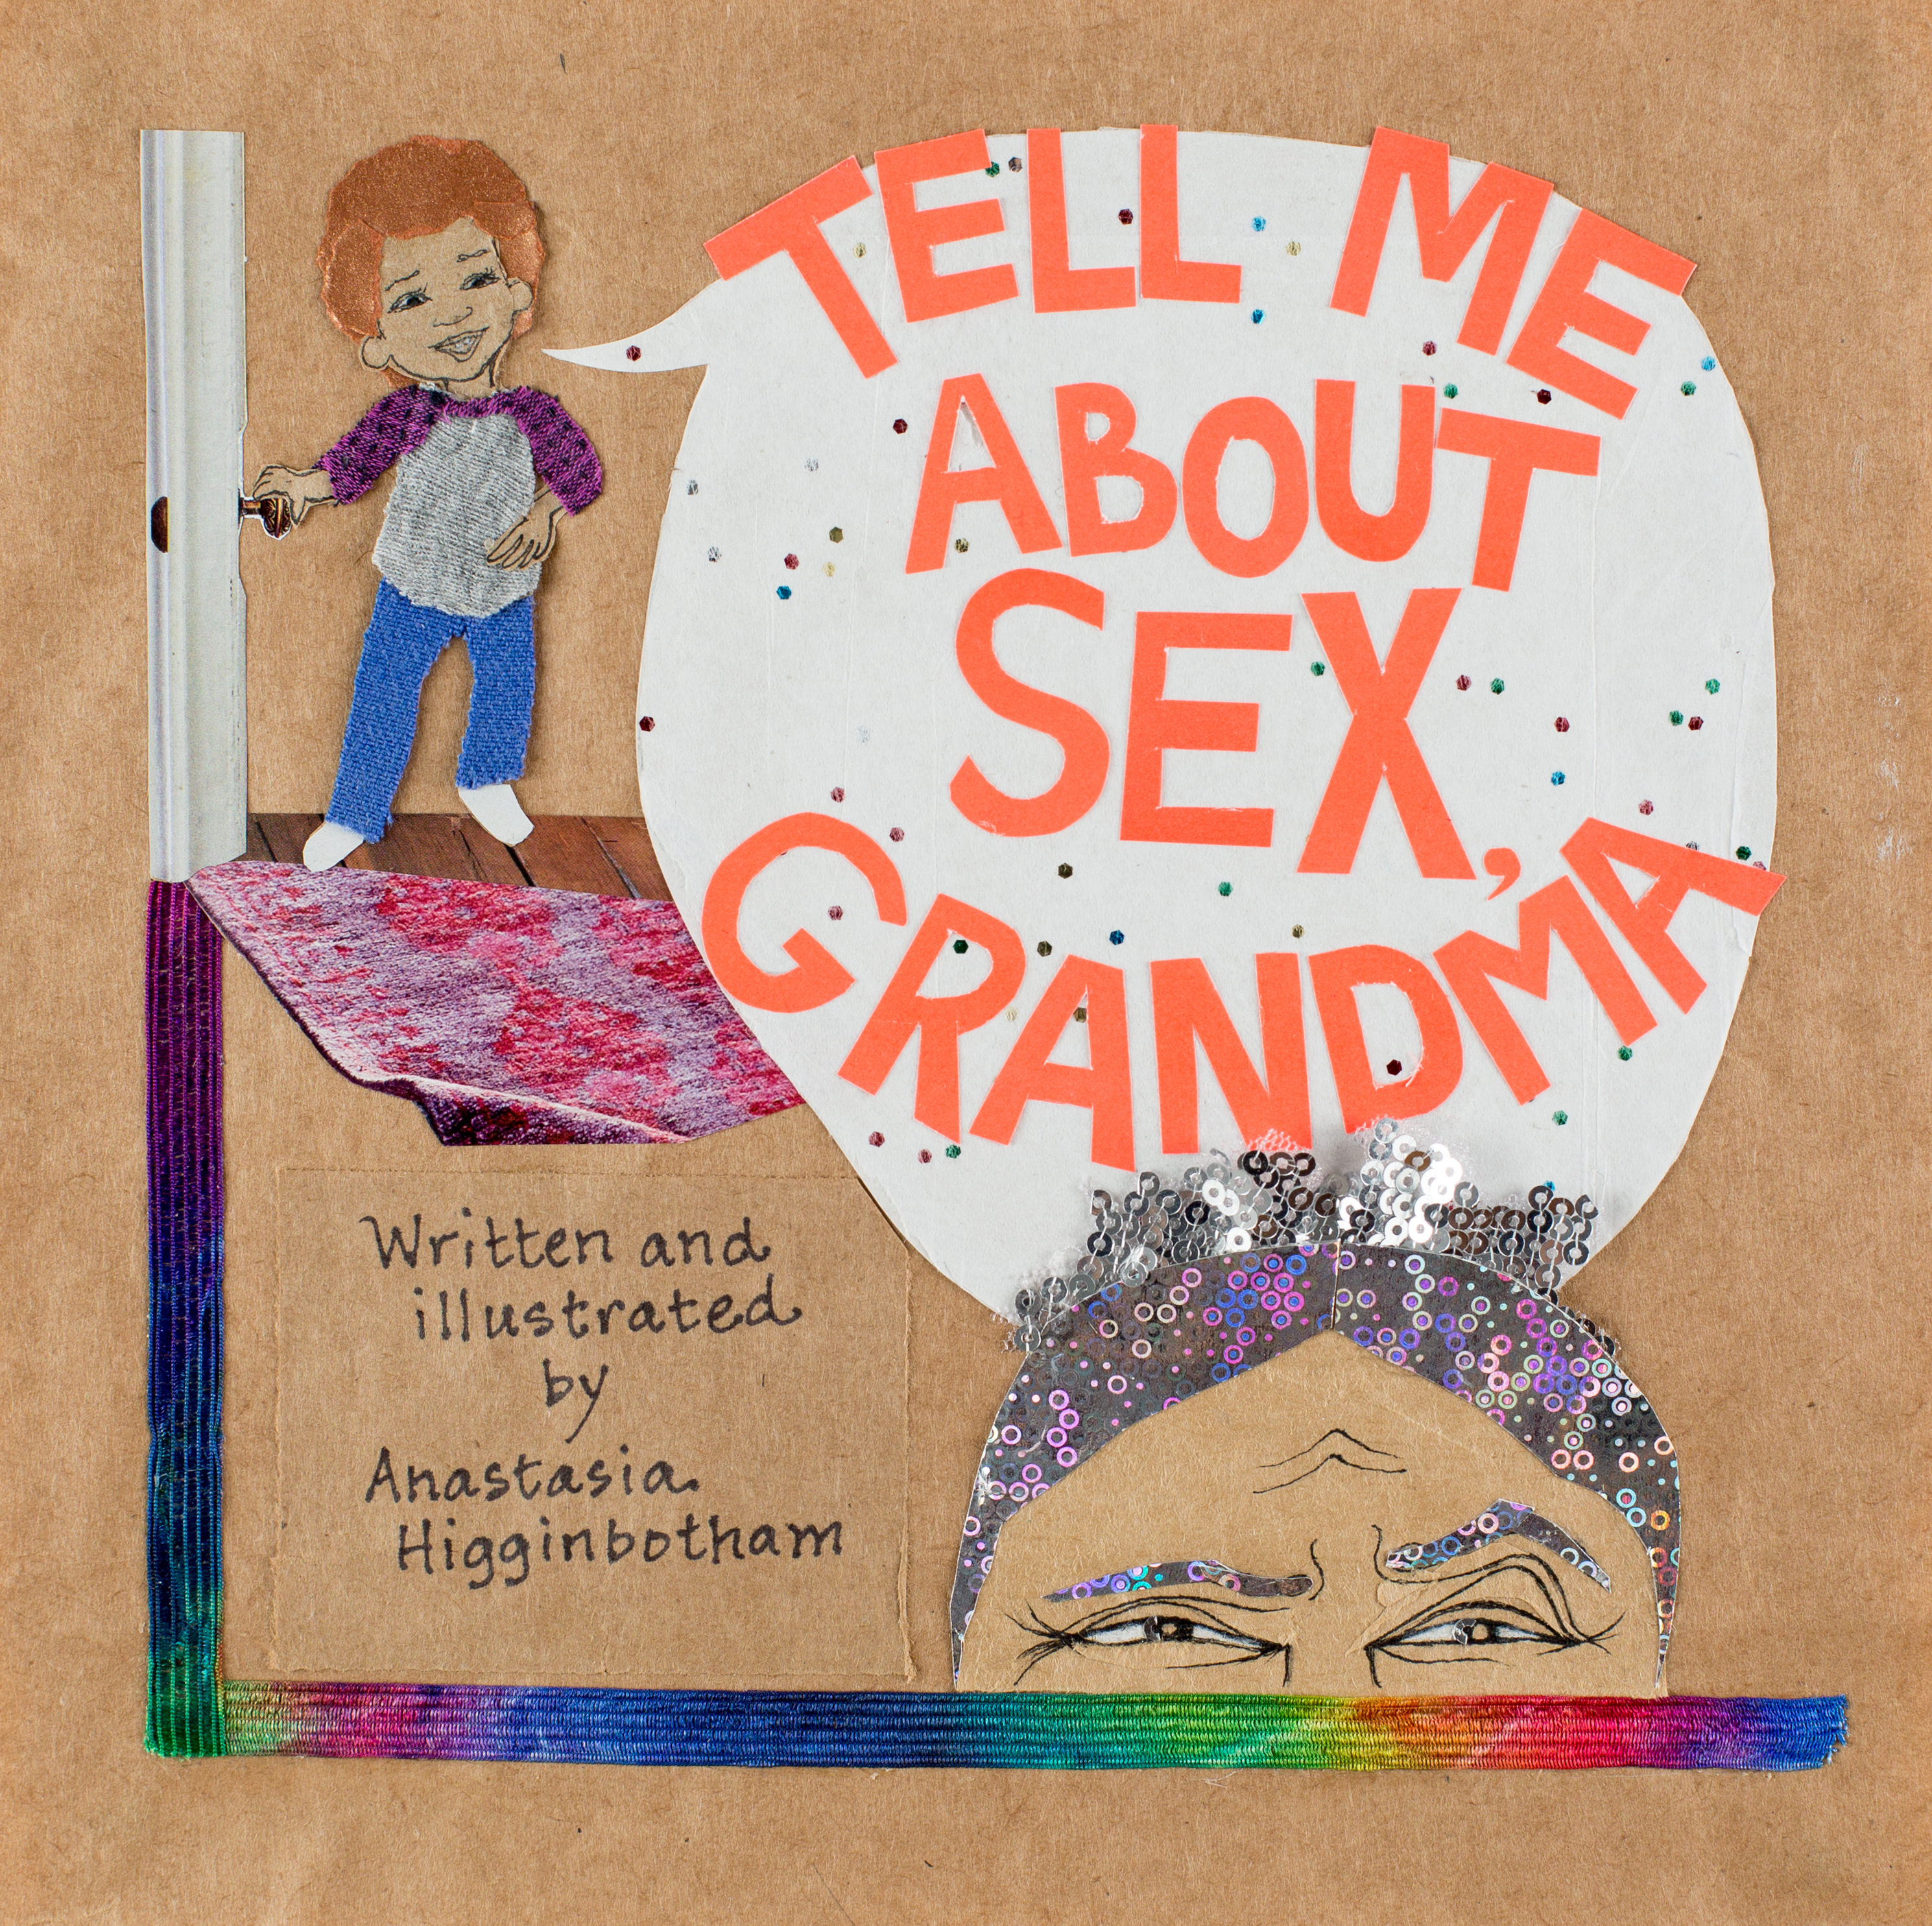 Tell Me About Sex, Grandma Image